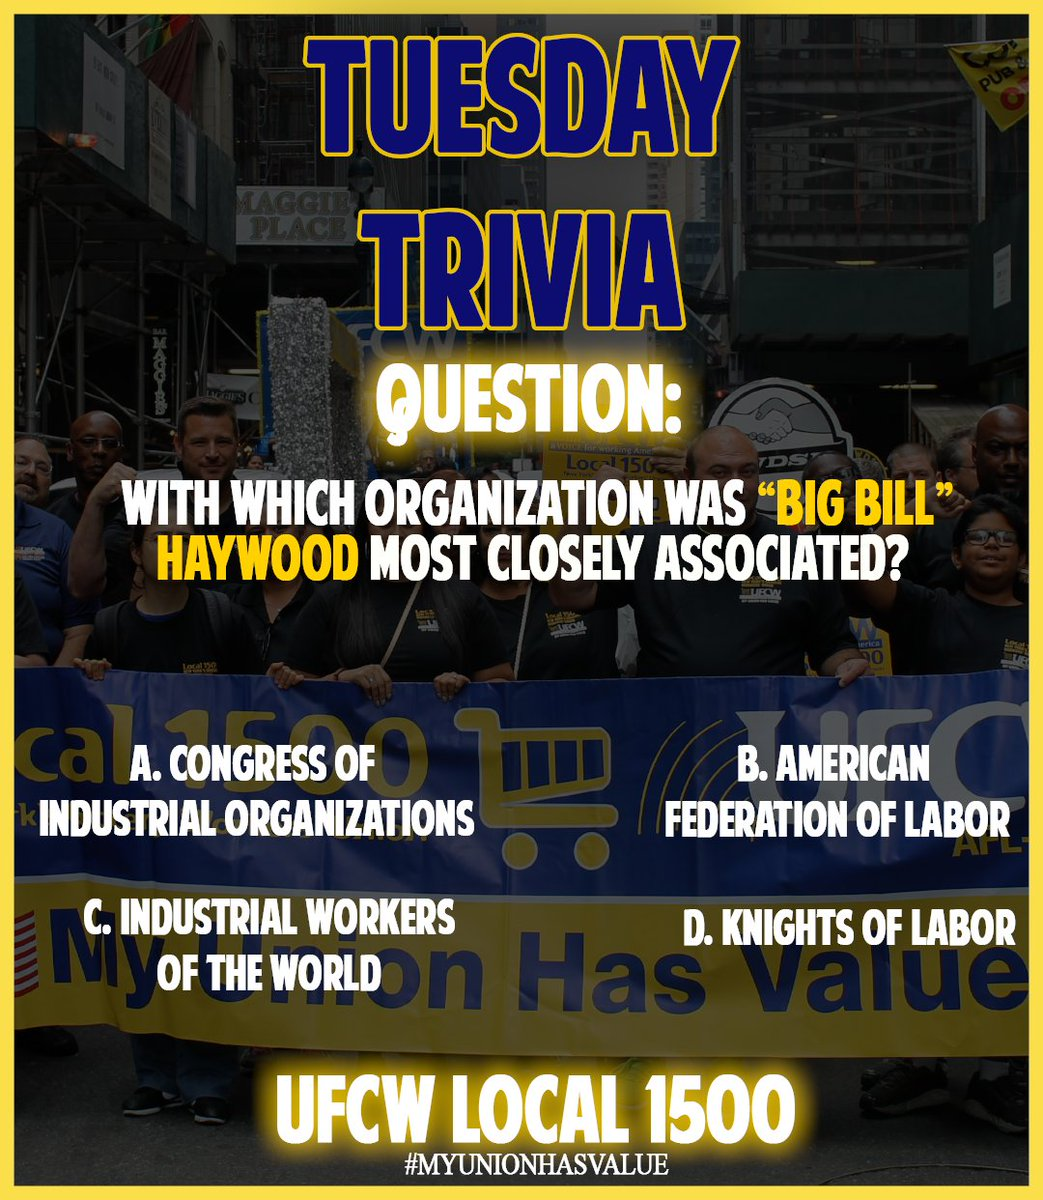 """With which organization was """"Big Bill"""" Haywood most closely associated? #TuesdayTrivia1500 #UFCW1500 #LaborHistory #UnionProud #UnionStrong <br>http://pic.twitter.com/2LhnLHWDn7"""